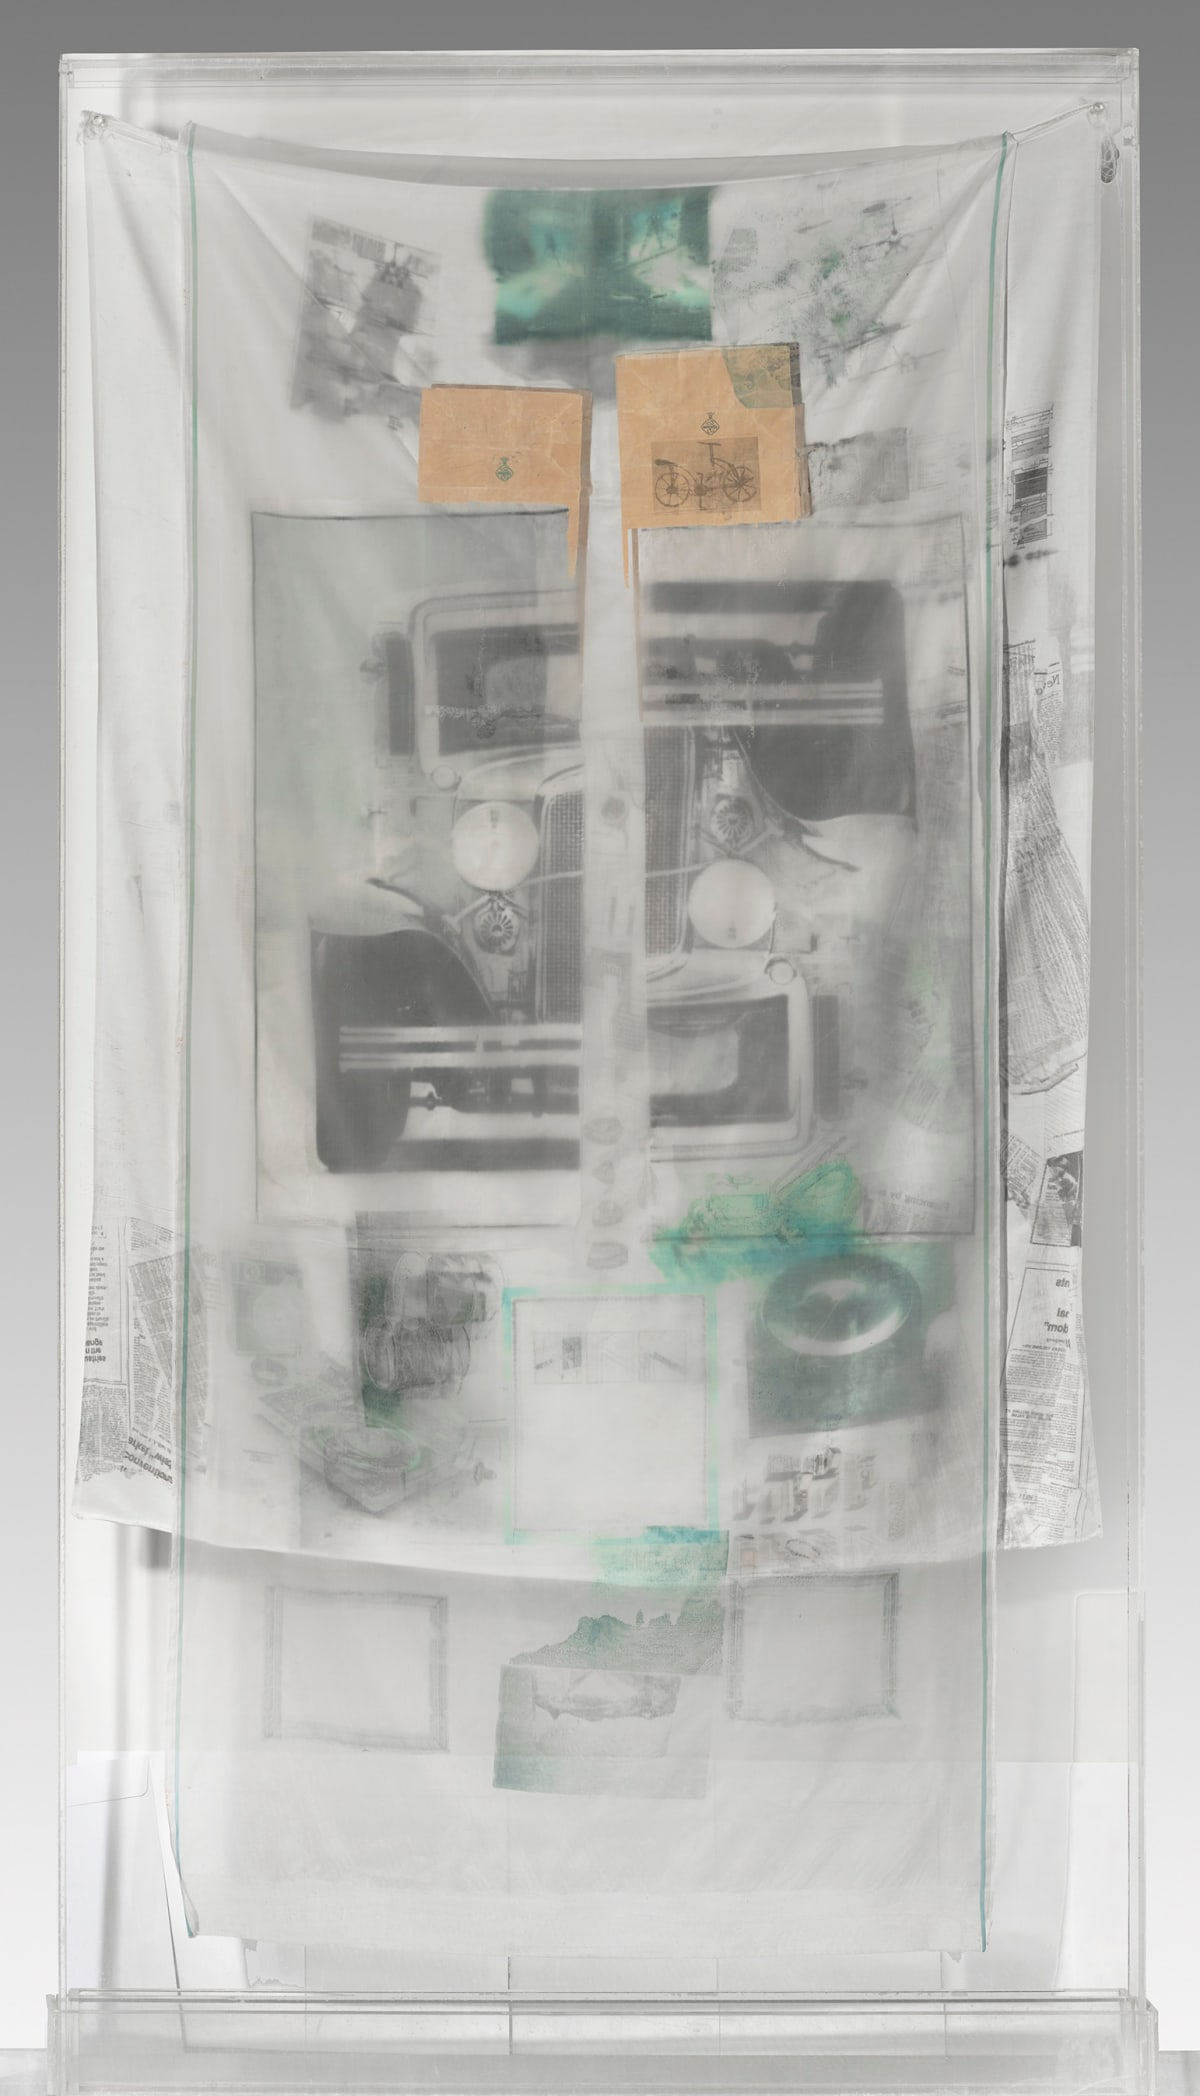 Robert Rauschenberg, Untitled 75.090 (from the Hoarfrost Series), 1975